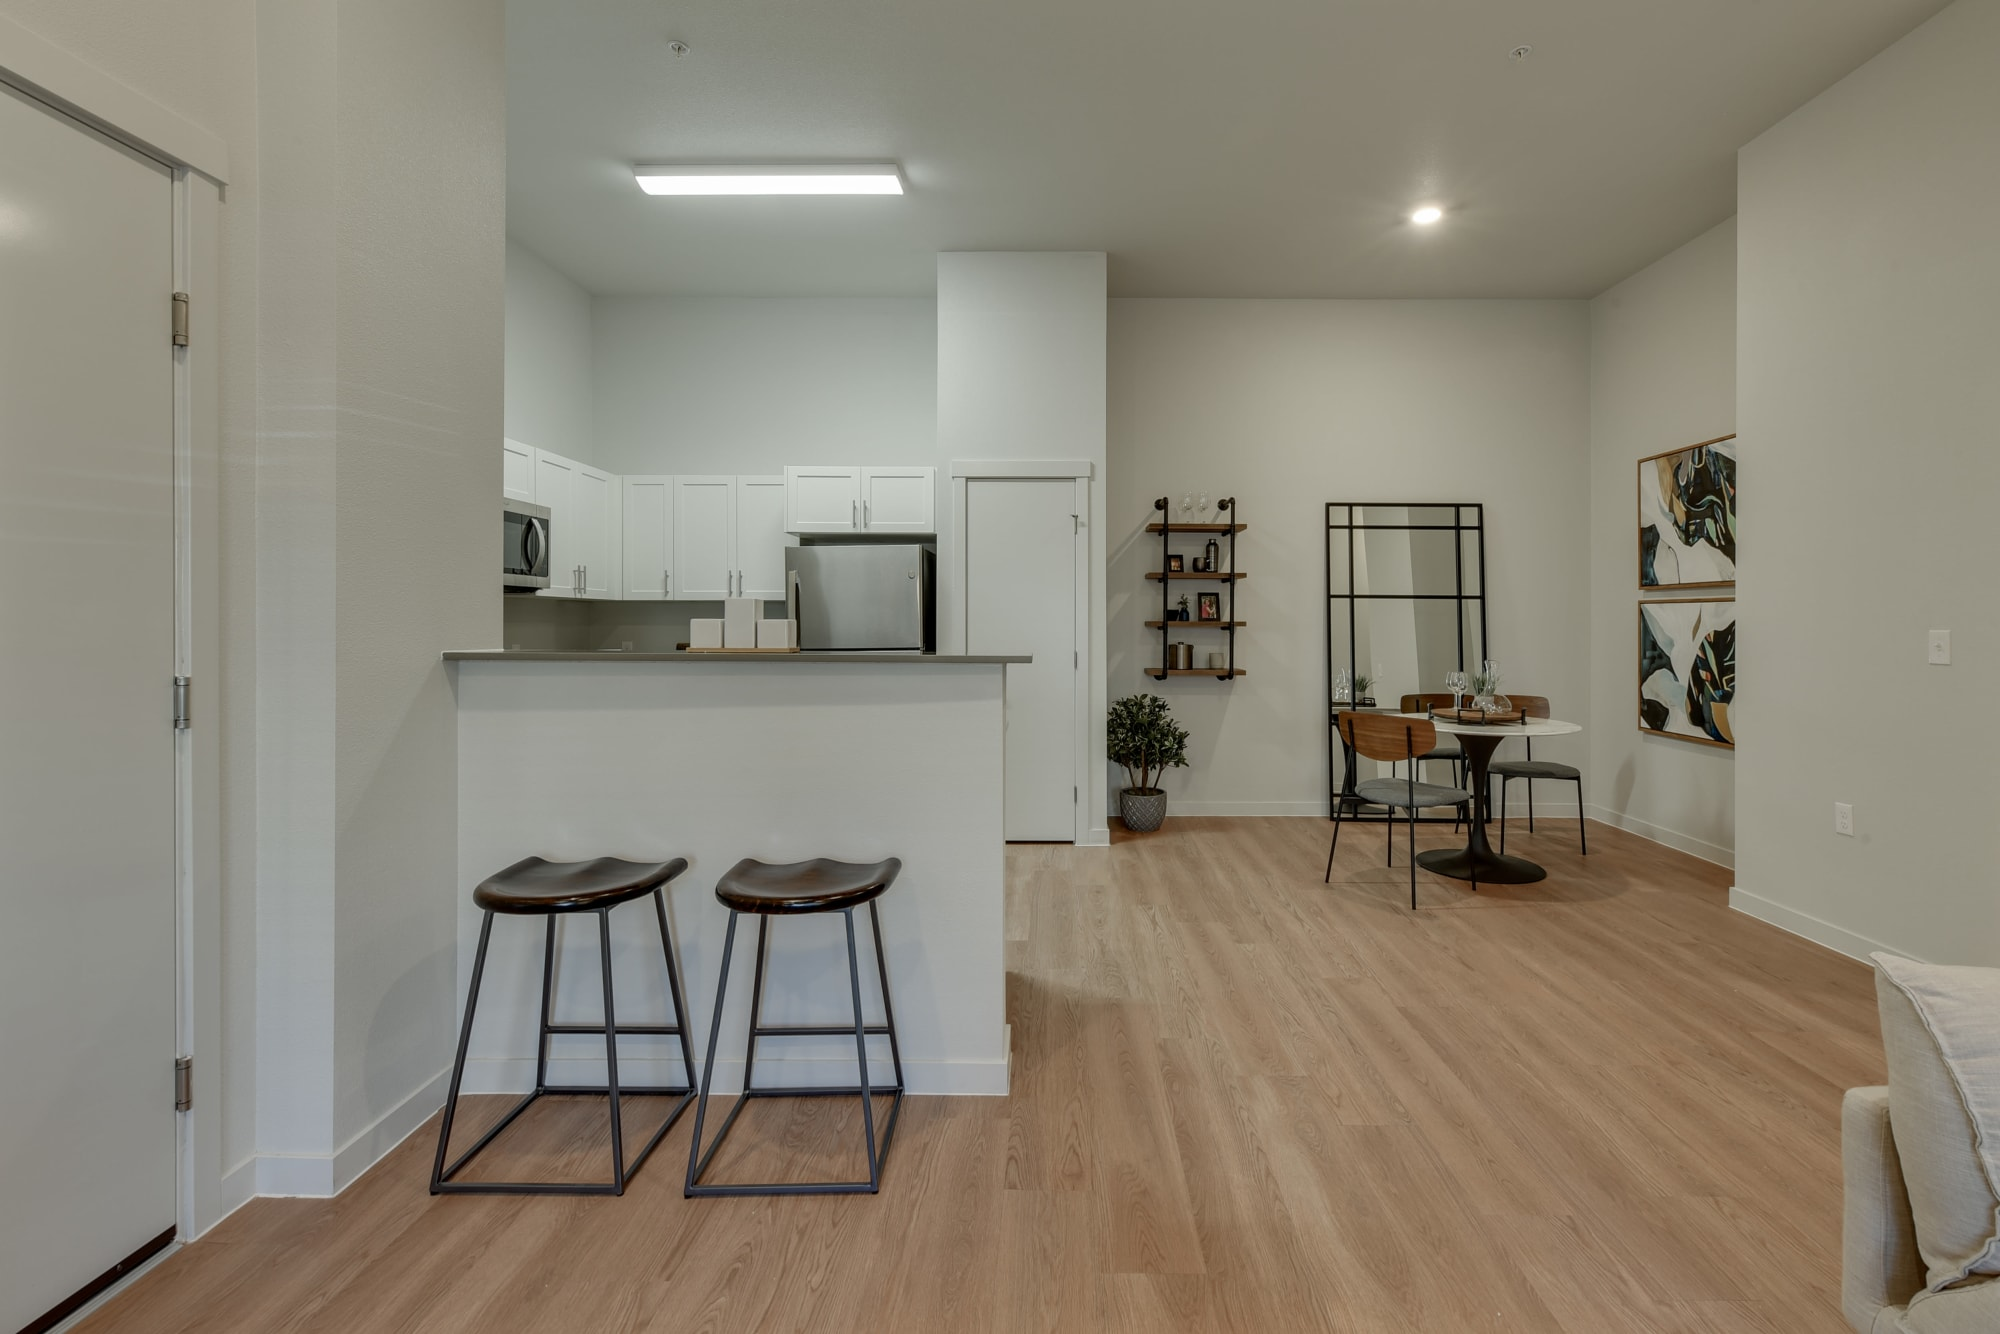 Kitchen with breakfast bar and dining room at Kestrel Park in Vancouver, Washington